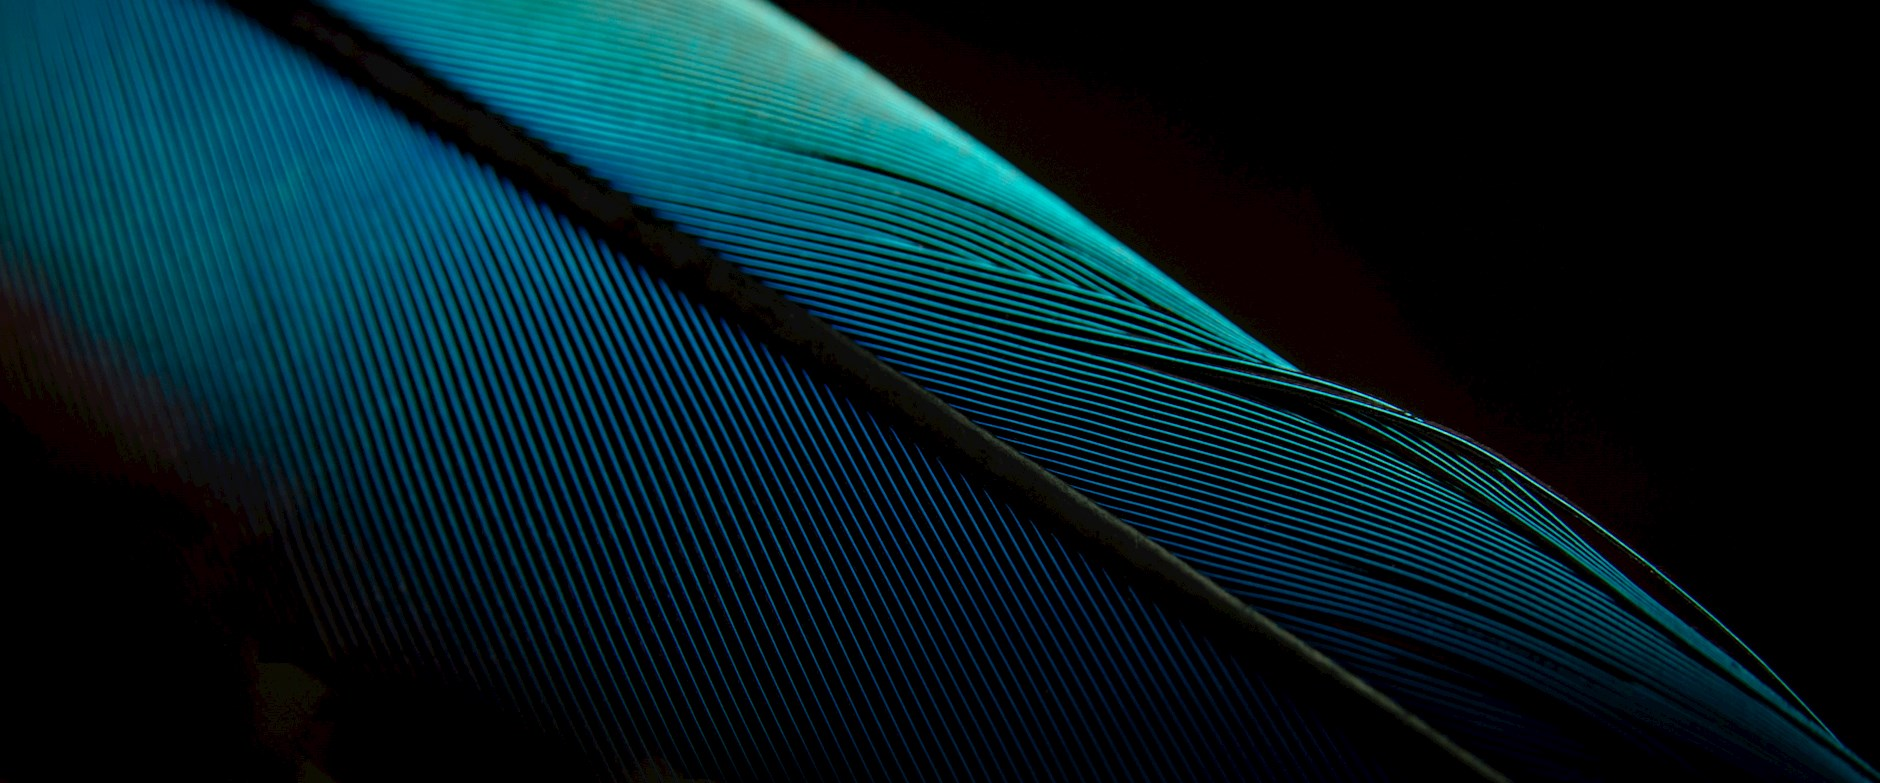 Close up of a bright blue feather on a dark background